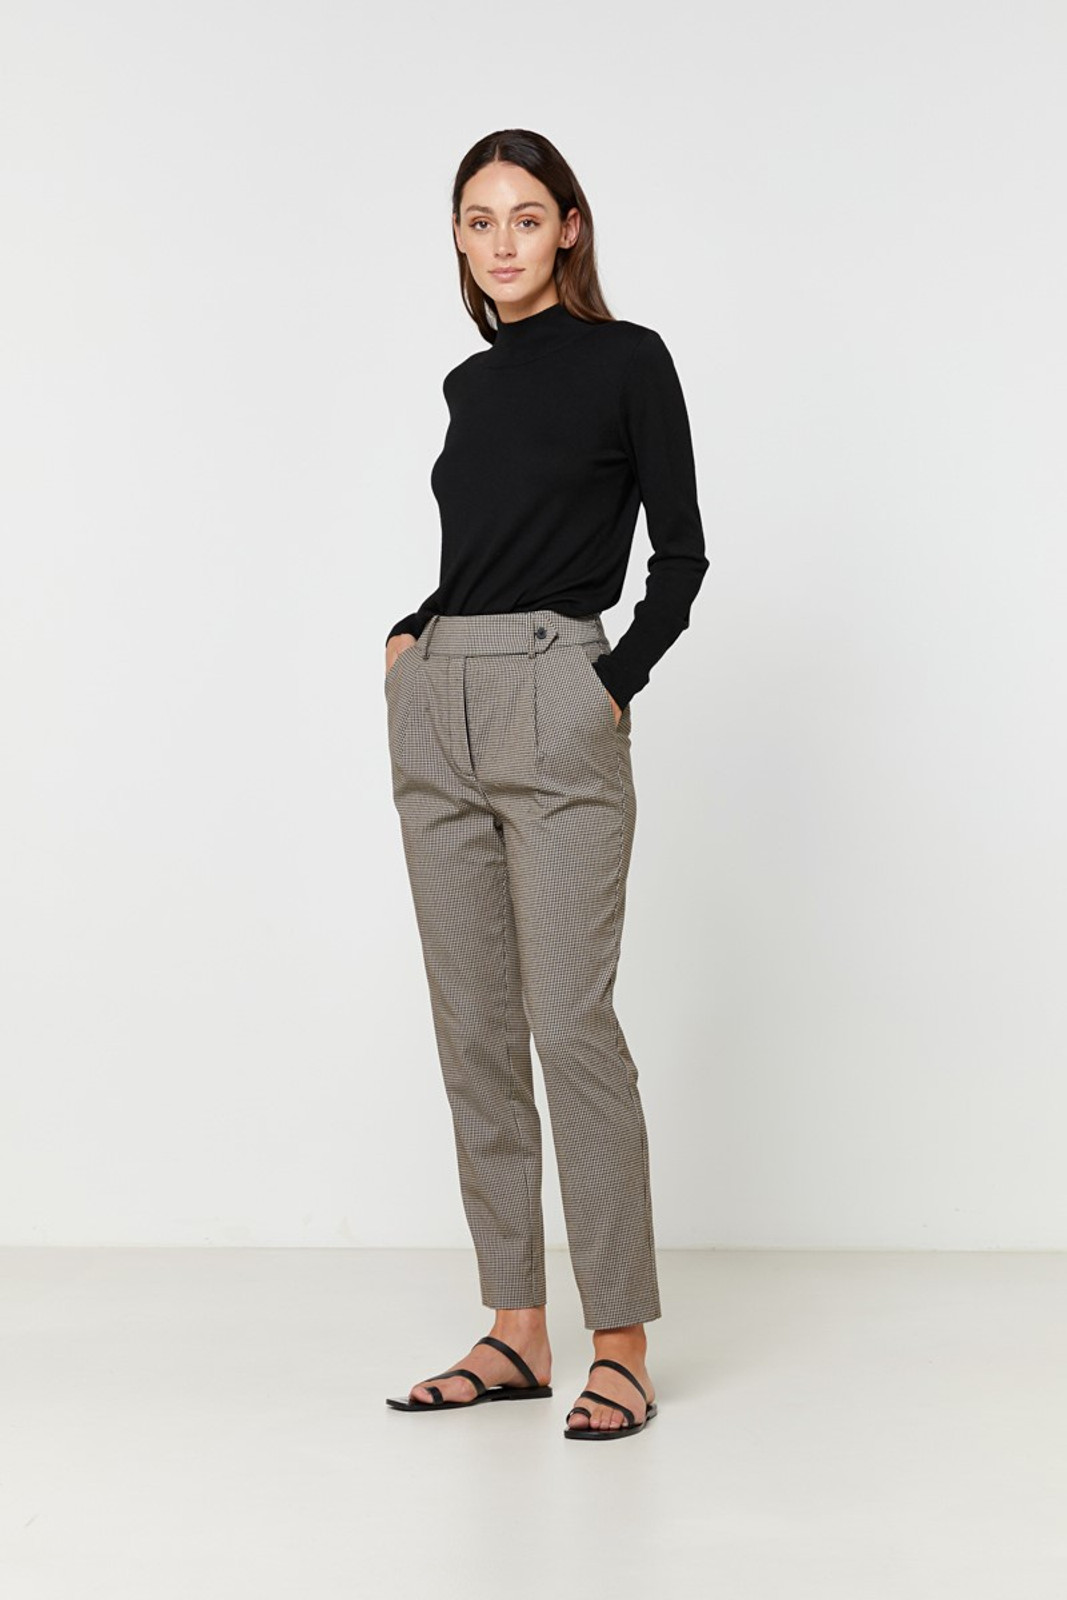 Elka Collective Henley Pant Multi  2